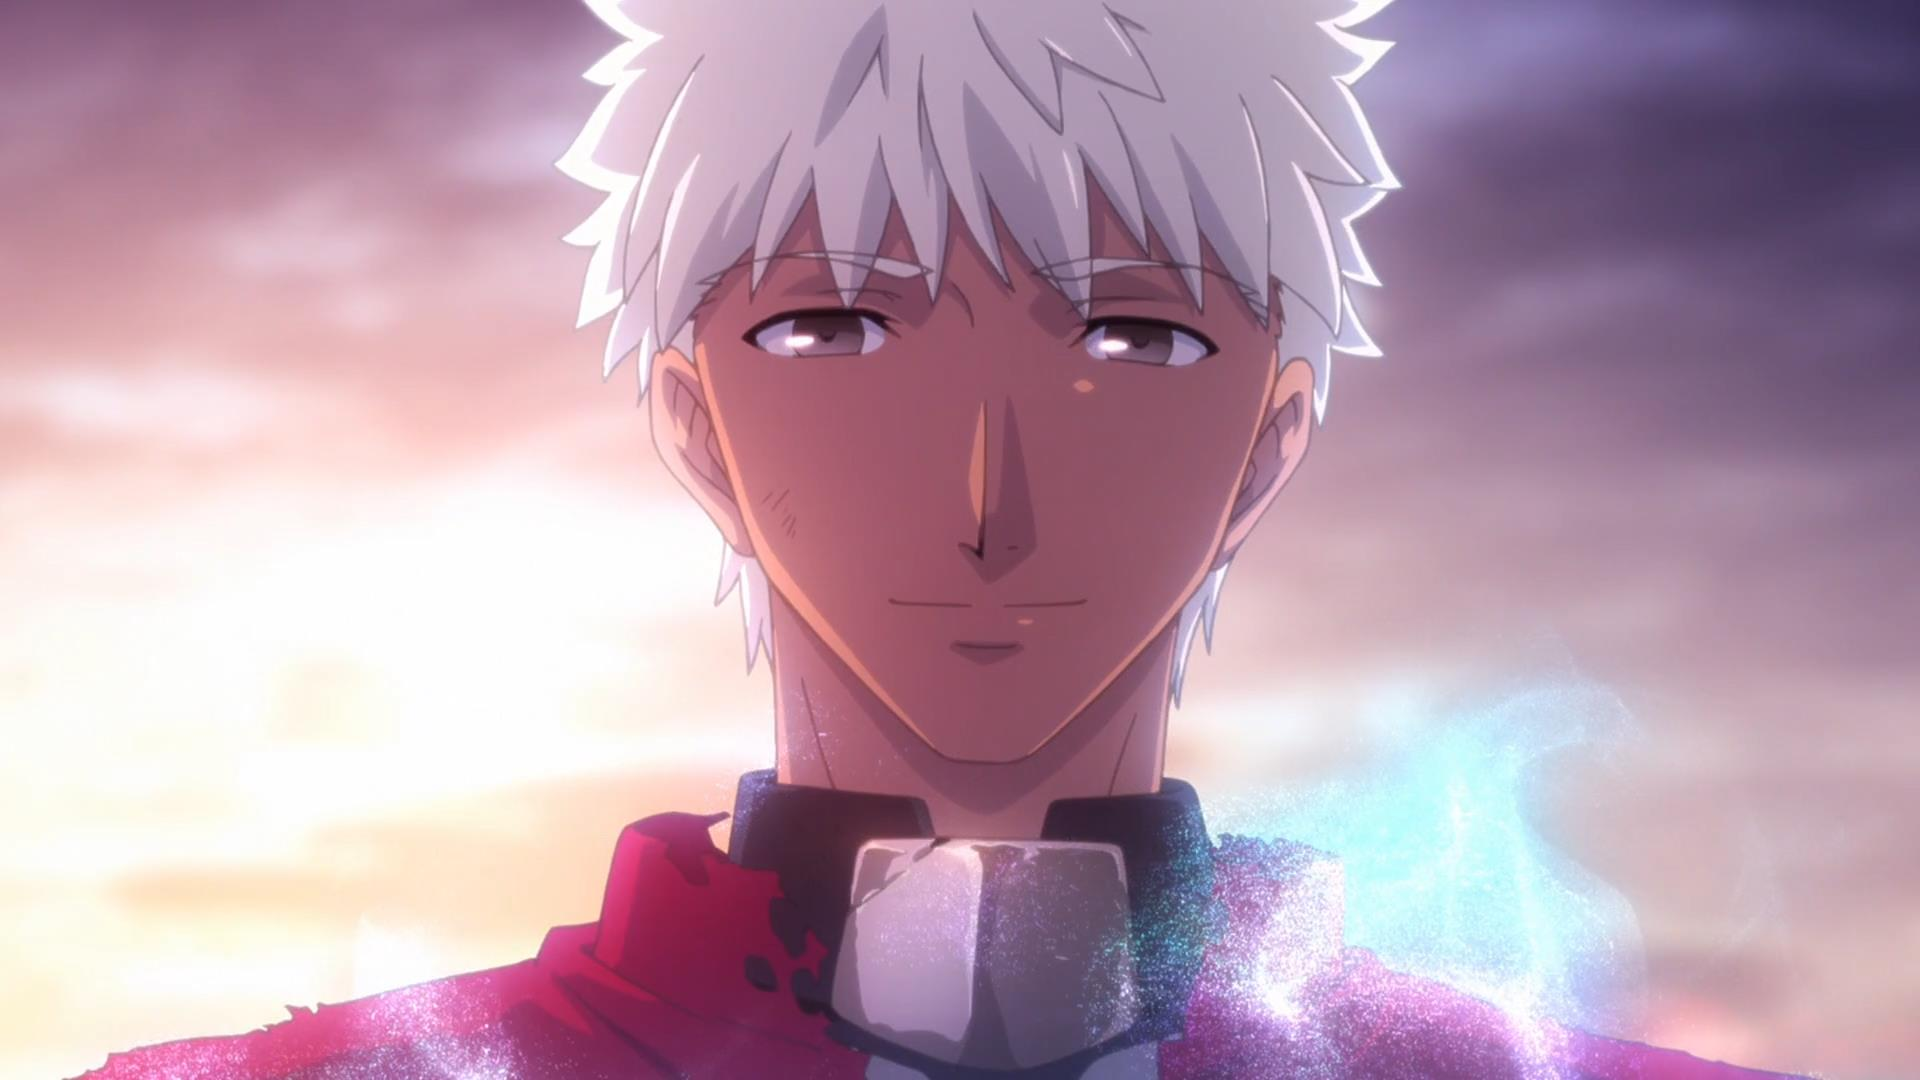 Fate/stay night: Unlimited Blade Works - 24